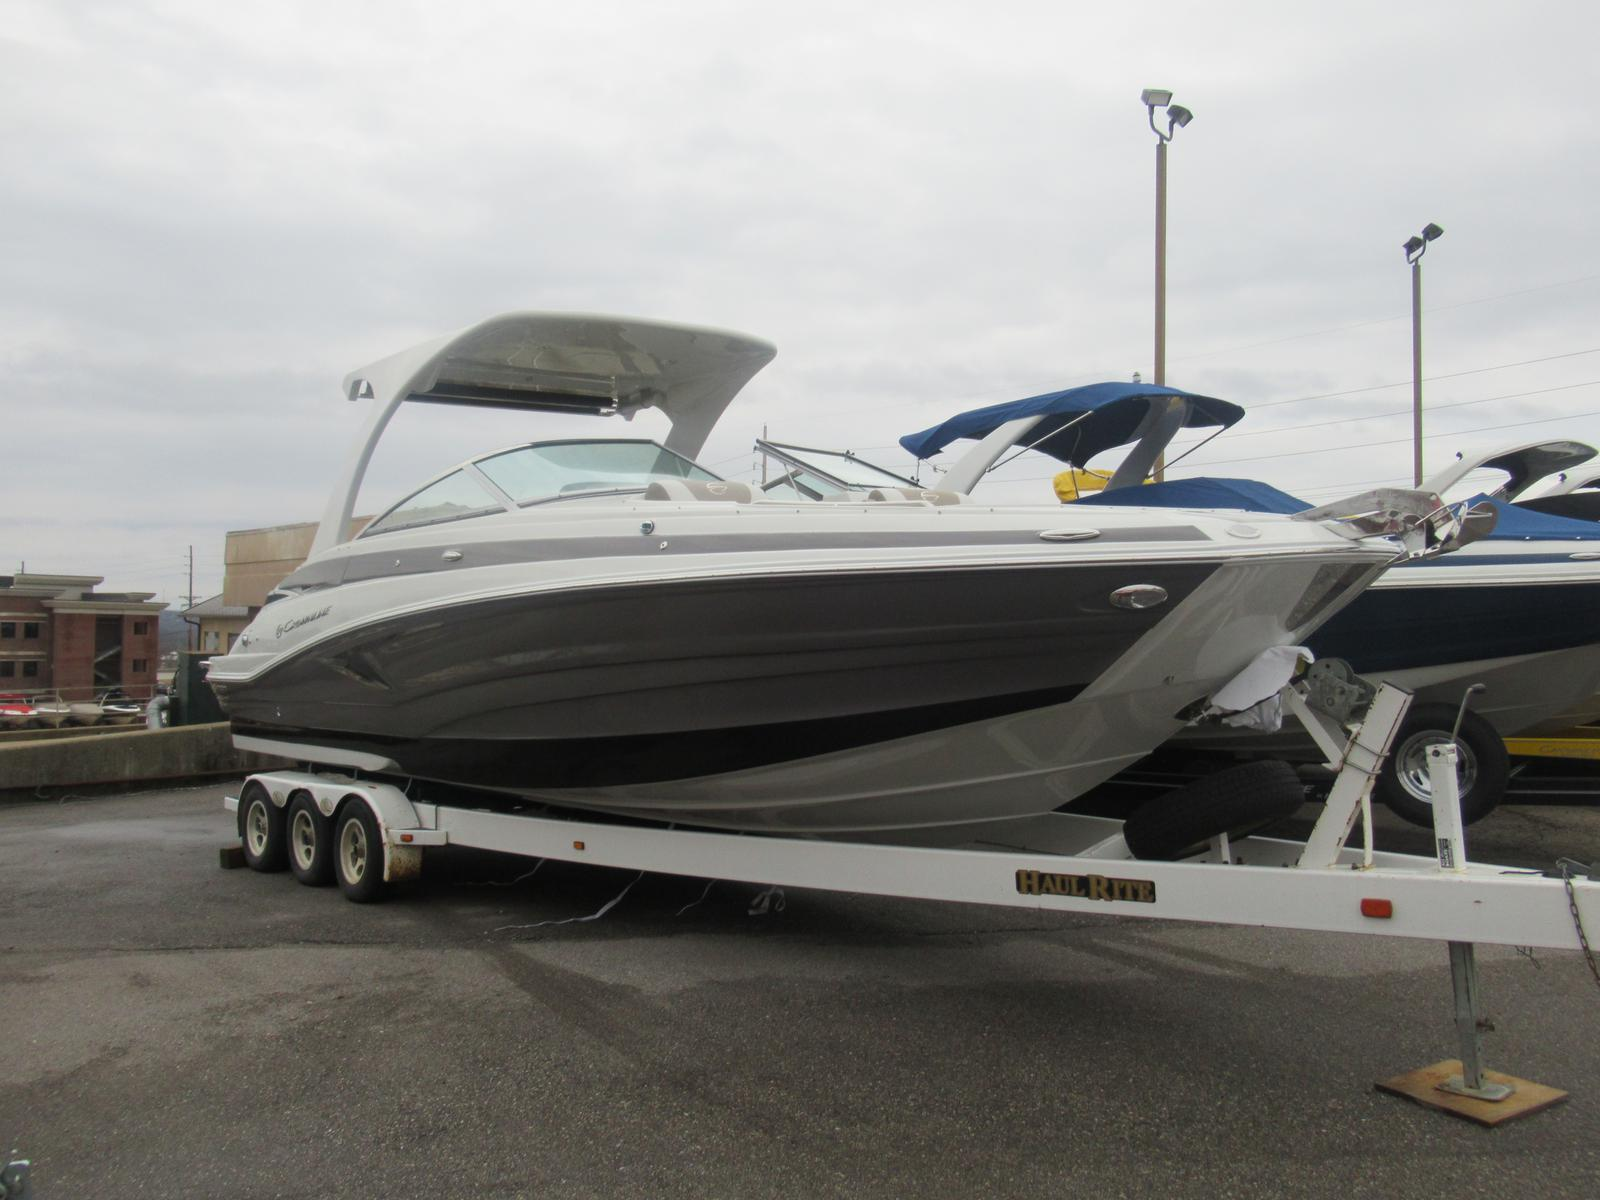 2019 Crownline E 305 for sale in Osage Beach, MO  All About